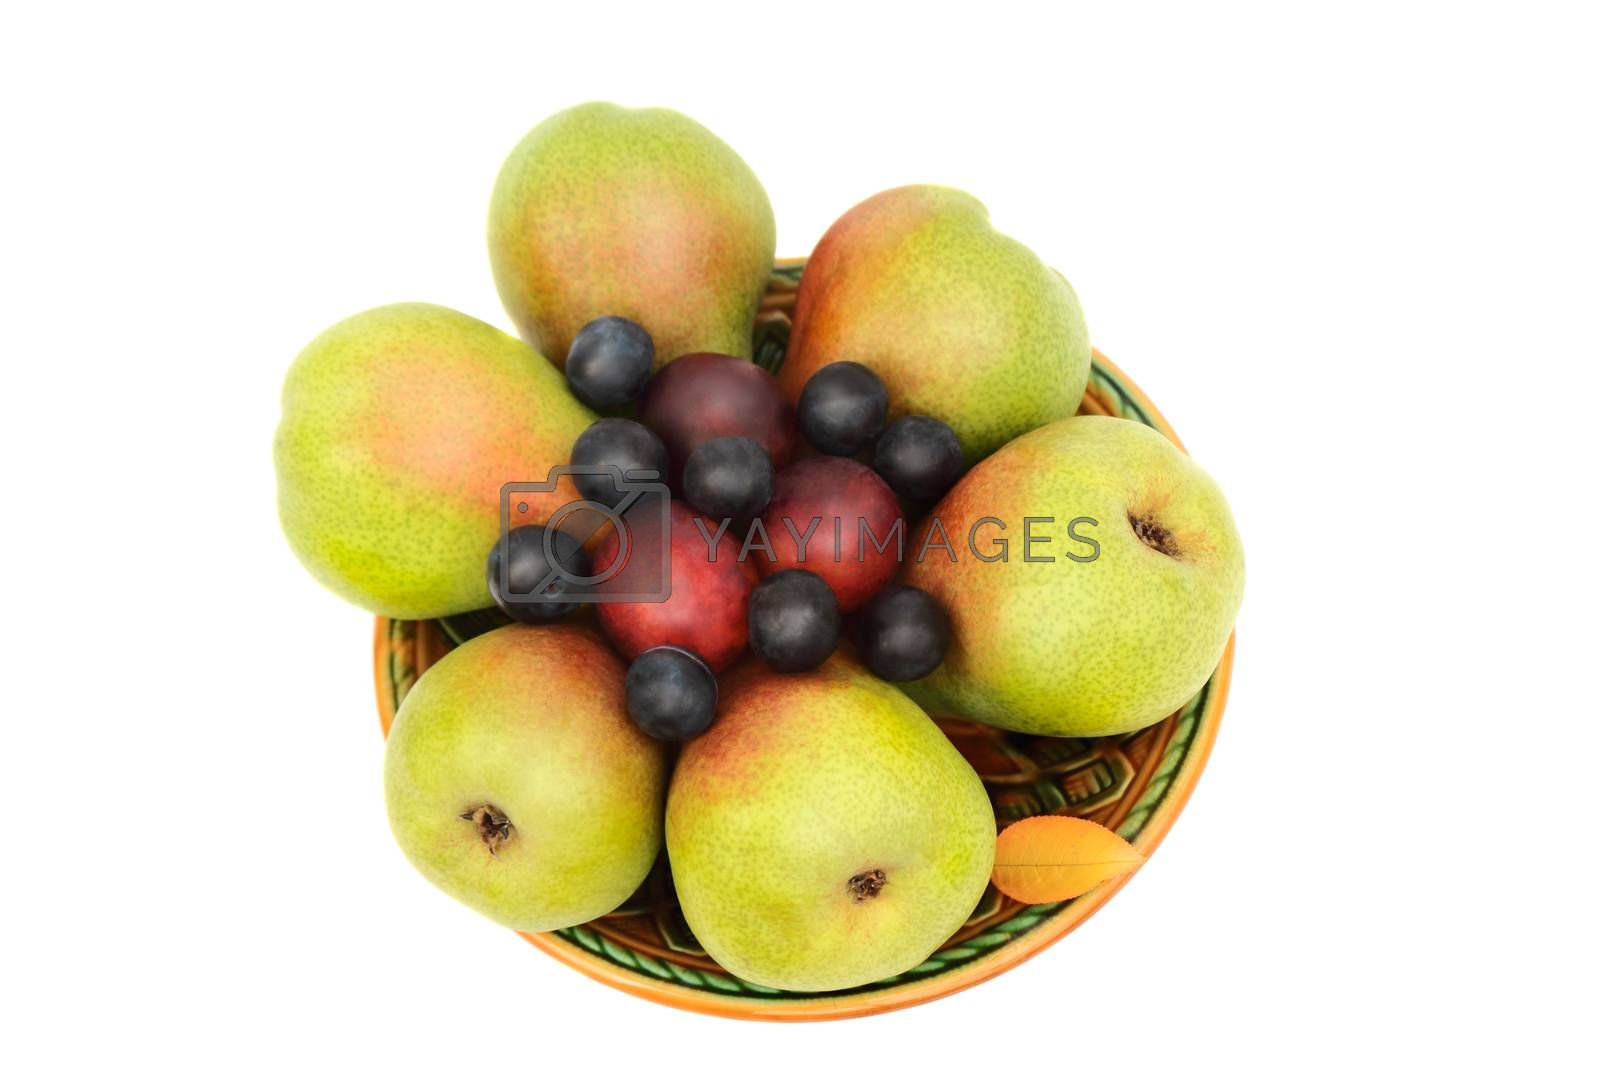 Large ripe pears, plums on a ceramic plate. Presented on a white background.